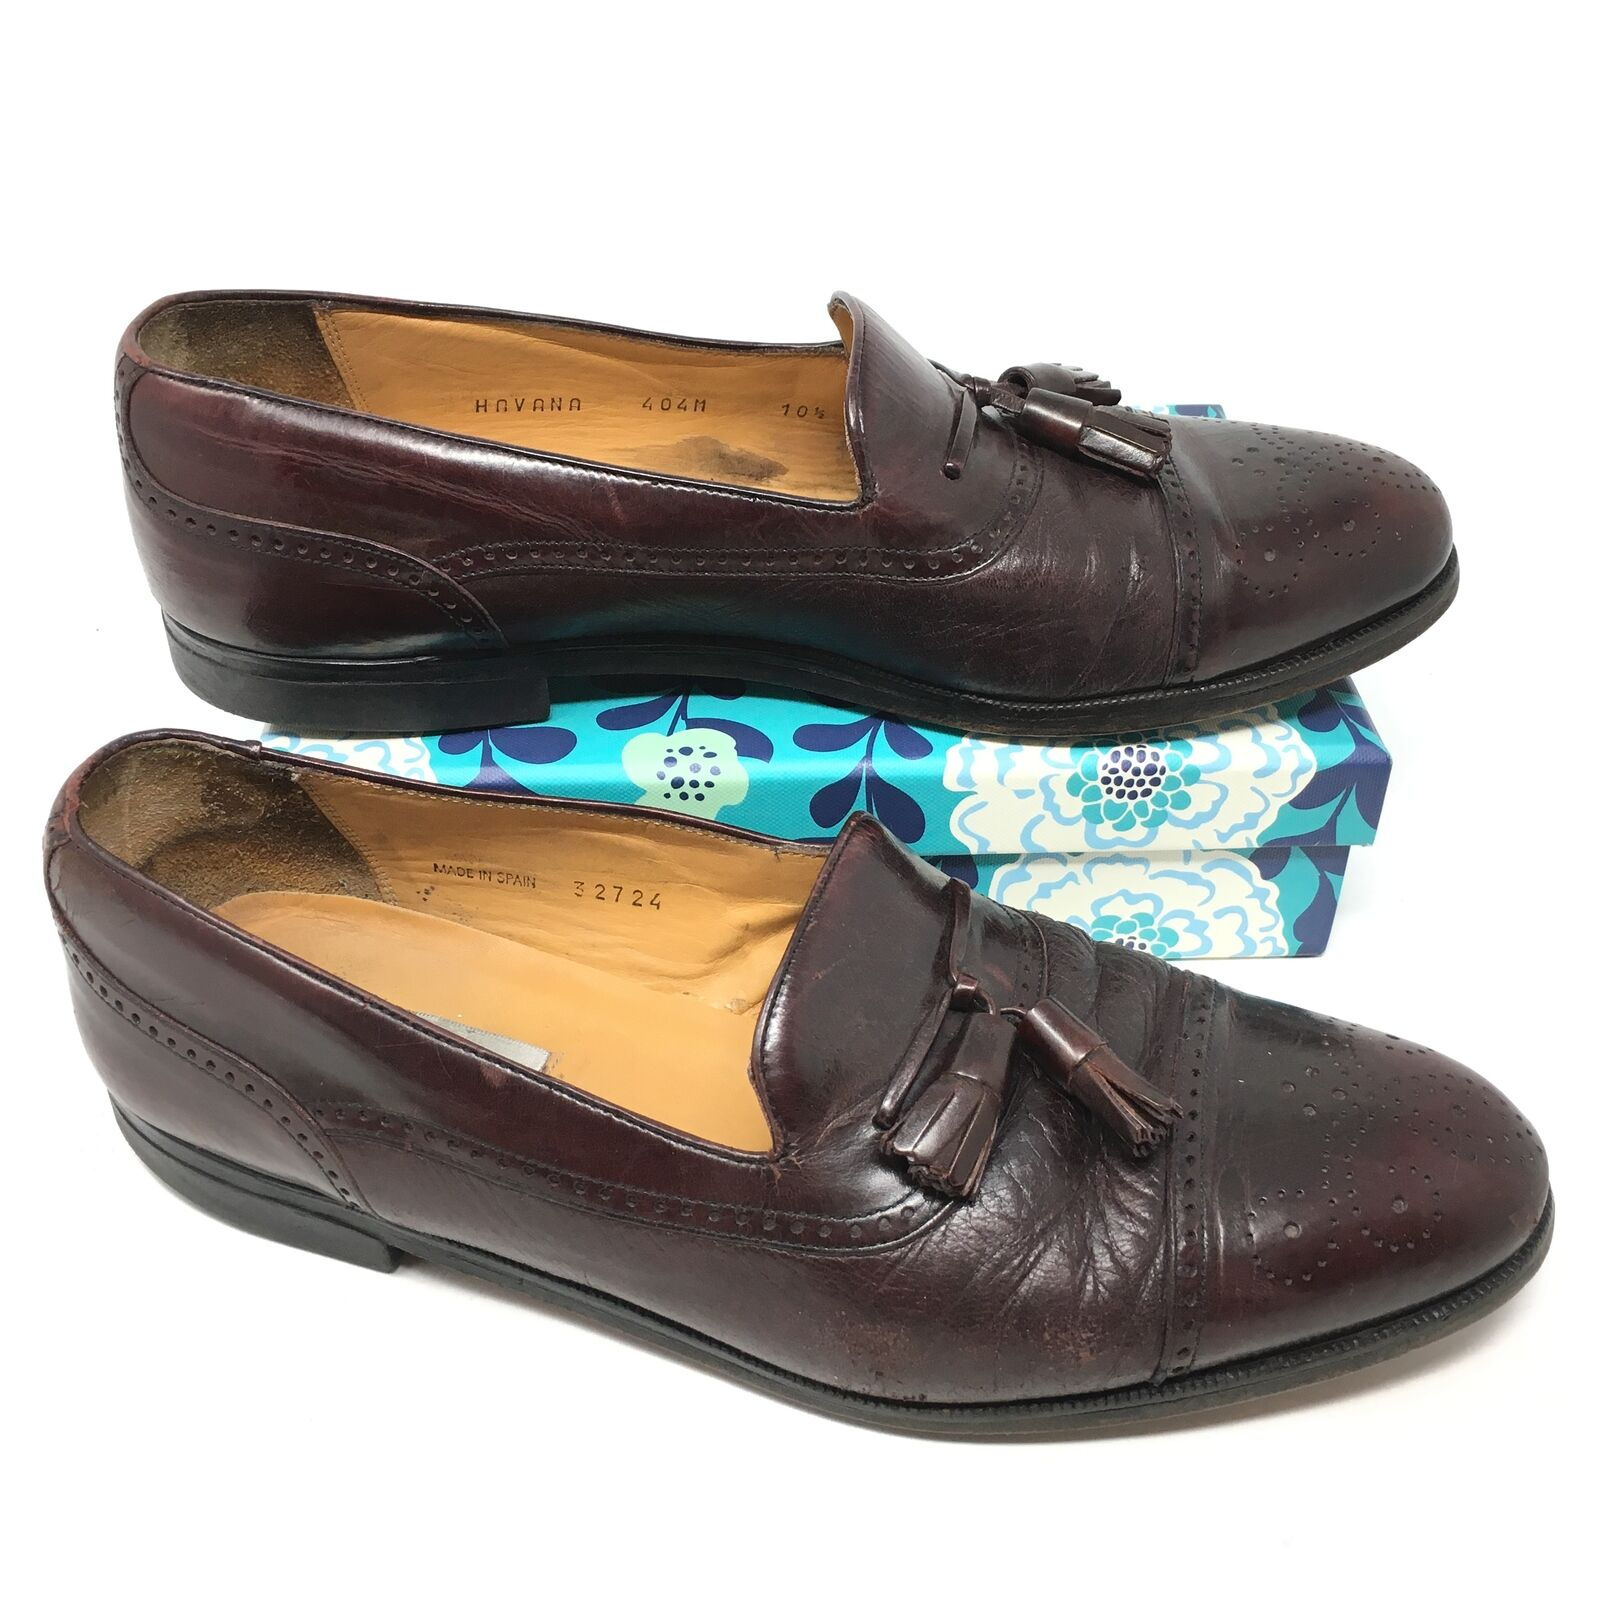 Men's Mezlan Size 10.5M Loafers shoes Burgundy Leather Tassels Brogue Cap Toe O13